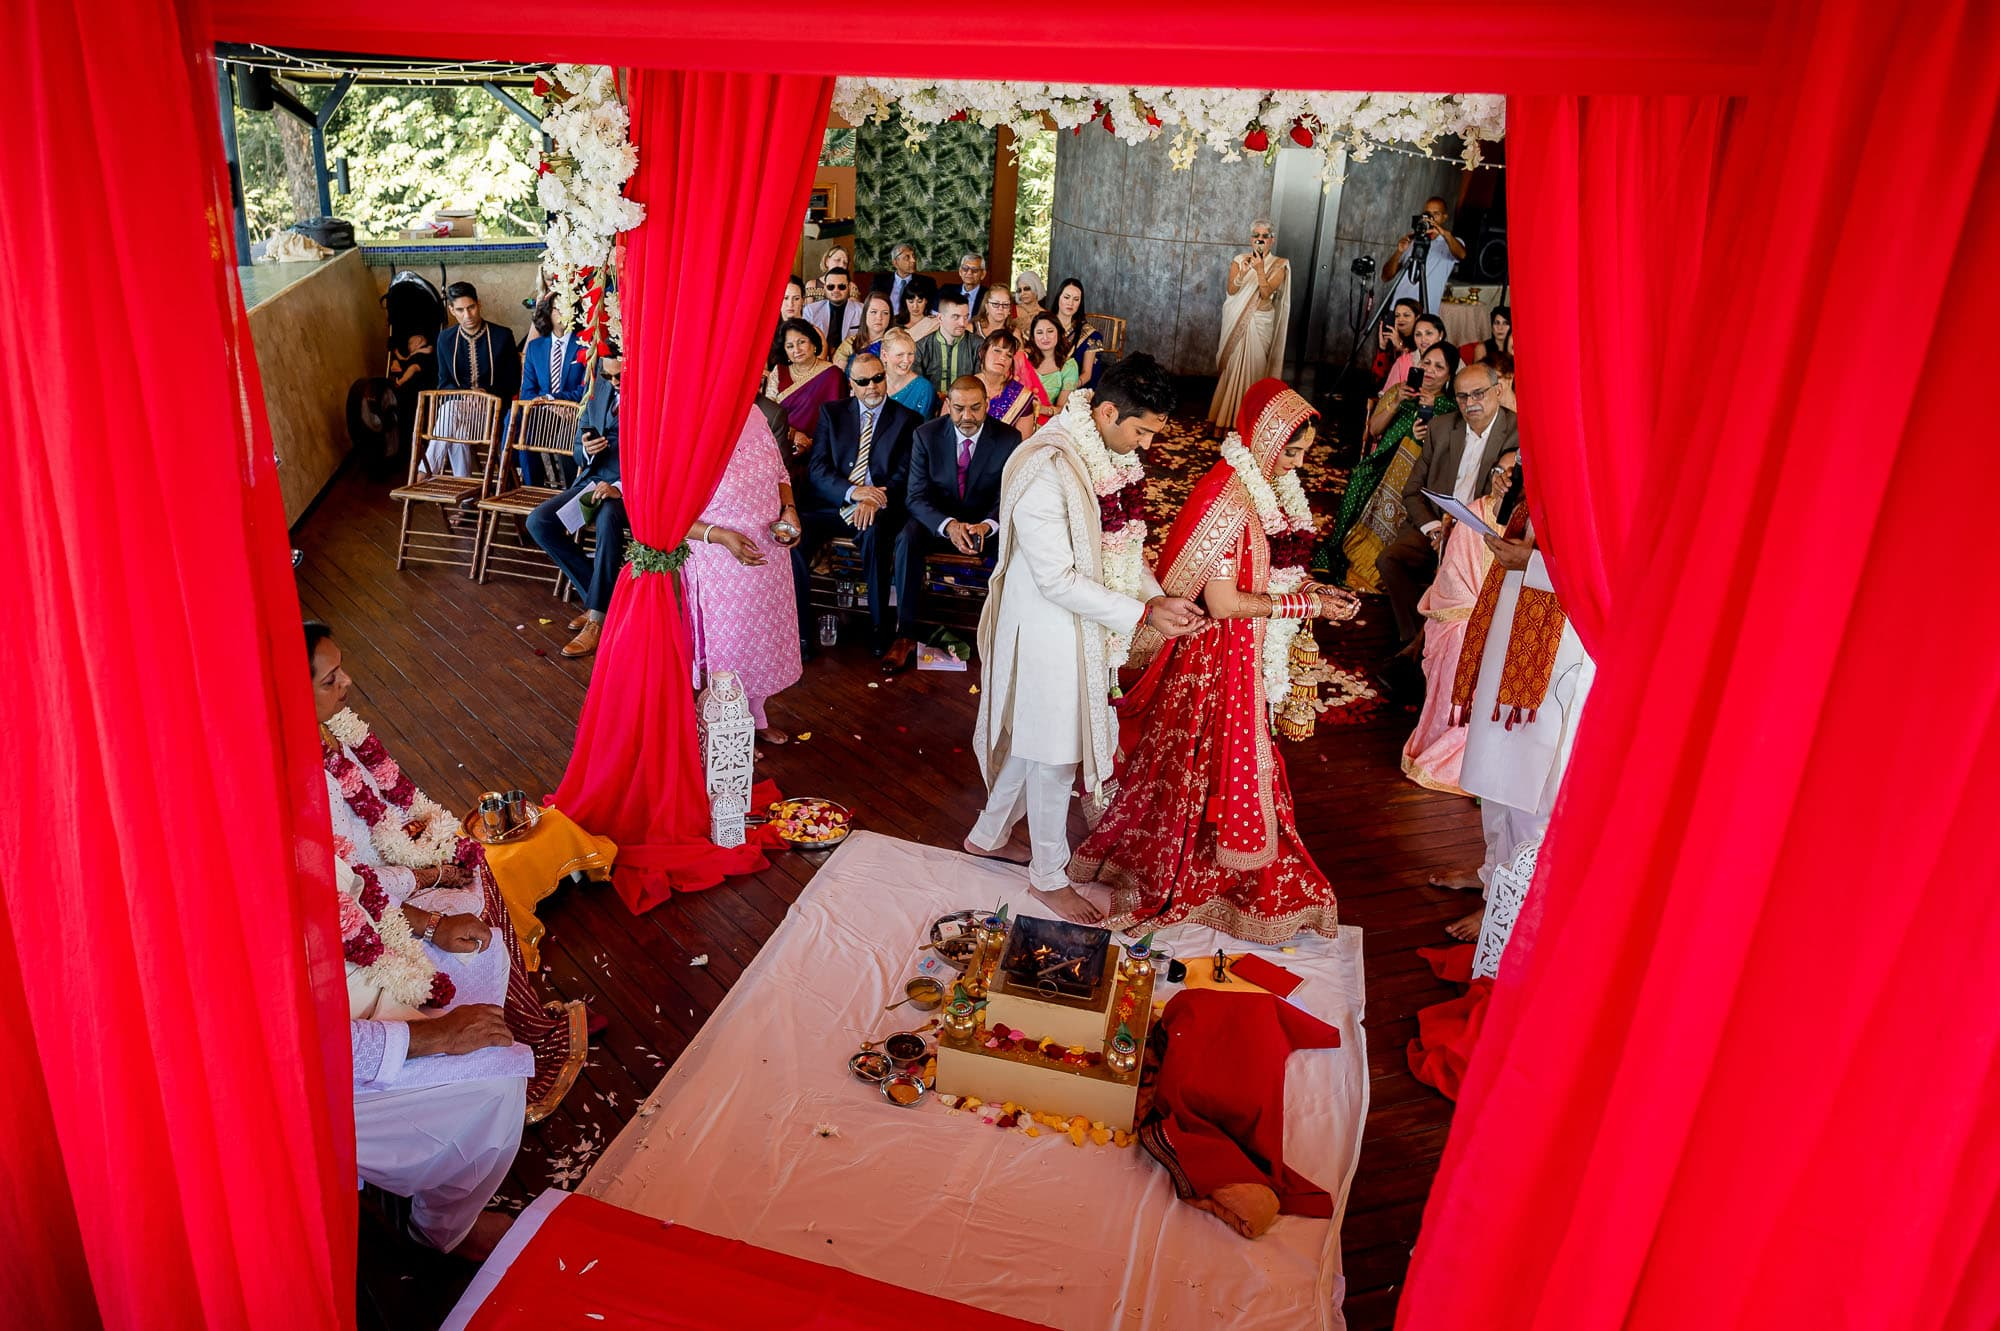 The bride and groom going around the fire as part of a traditional Hindu Muslim ceremony